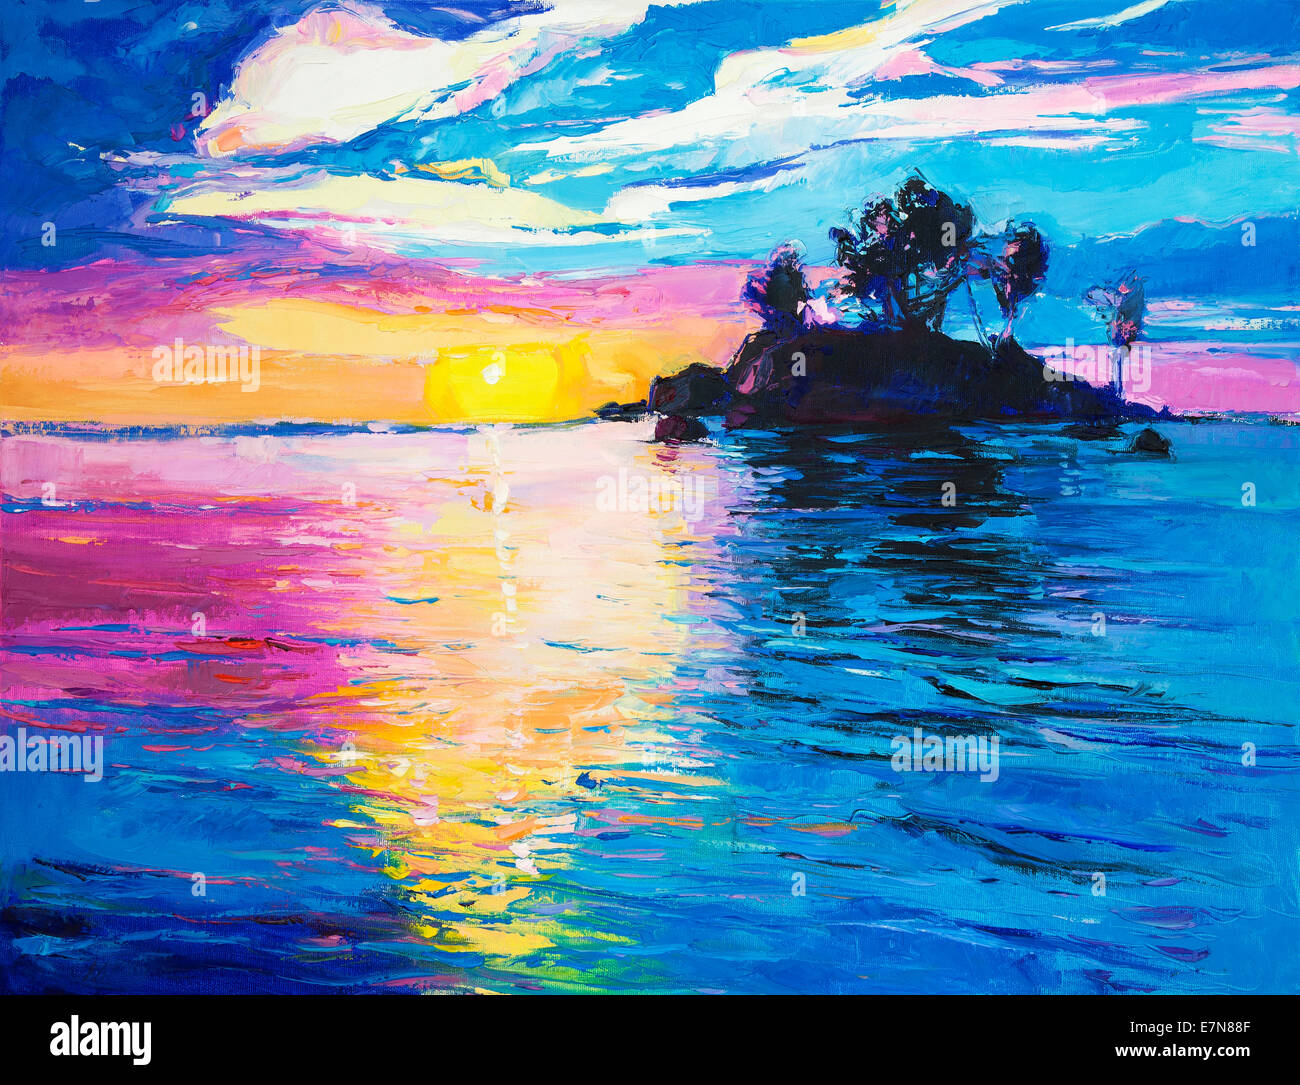 Original oil painting of lonely island and sea on canvas.Rich colorful Sunset over ocean.Modern Impressionism - Stock Image